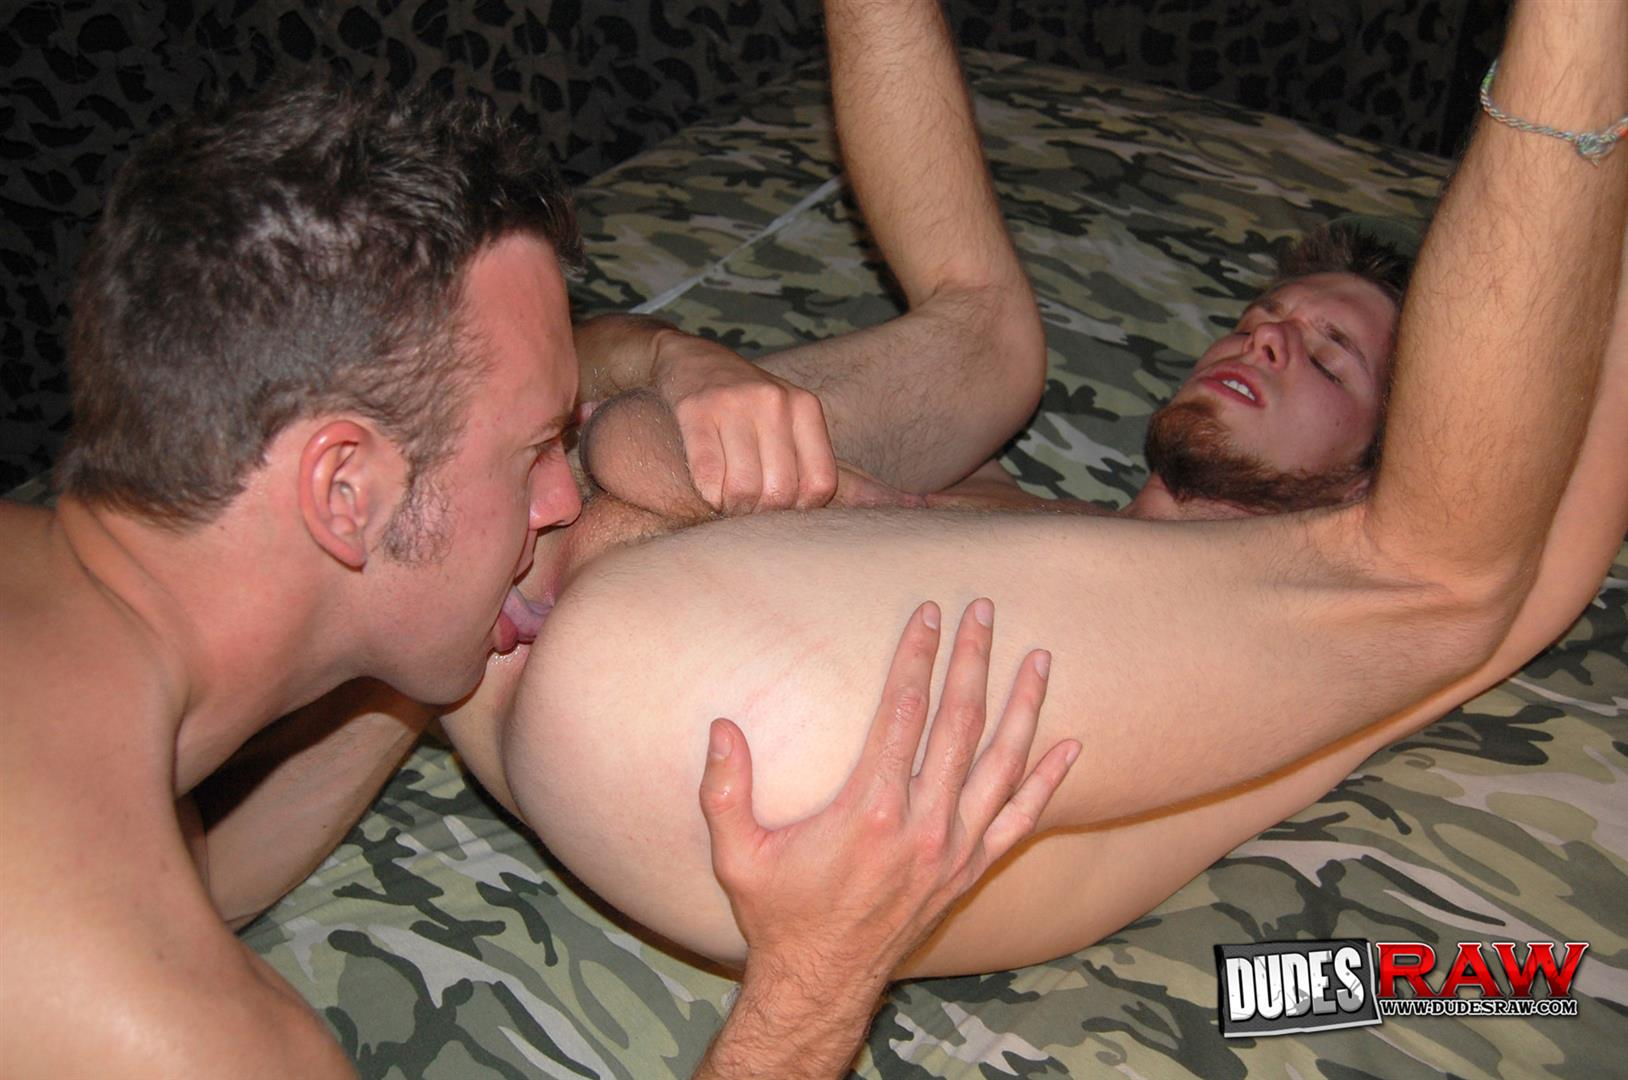 Dudes Raw Jacques Satori and Zeke Stardust Army Guys Barebacking Amateur Gay Porn 16 Army Guys Discover Gay Sex and Bareback Fuck Each Other